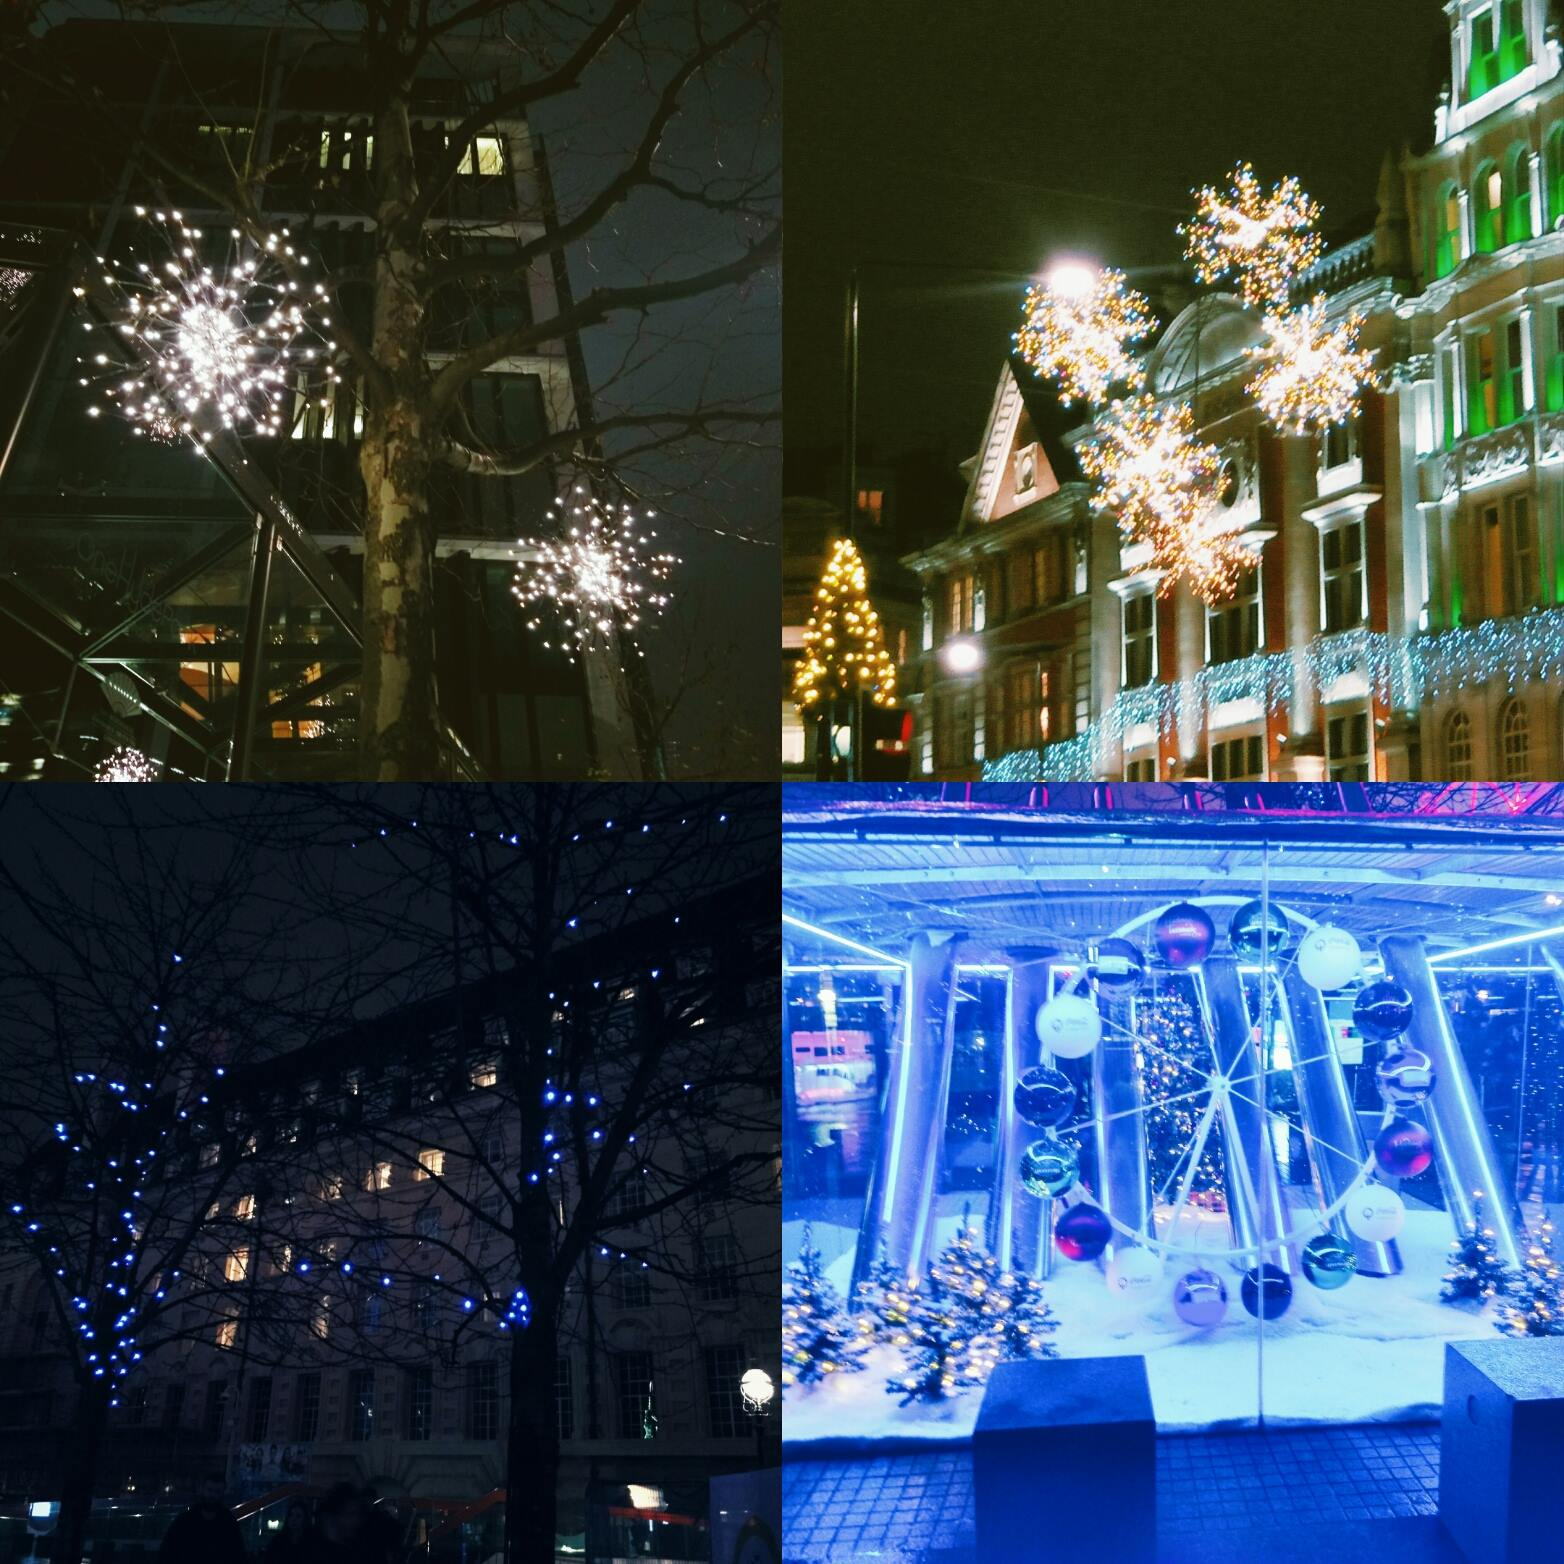 lebellelavie - We went to see the London Christmas Lights